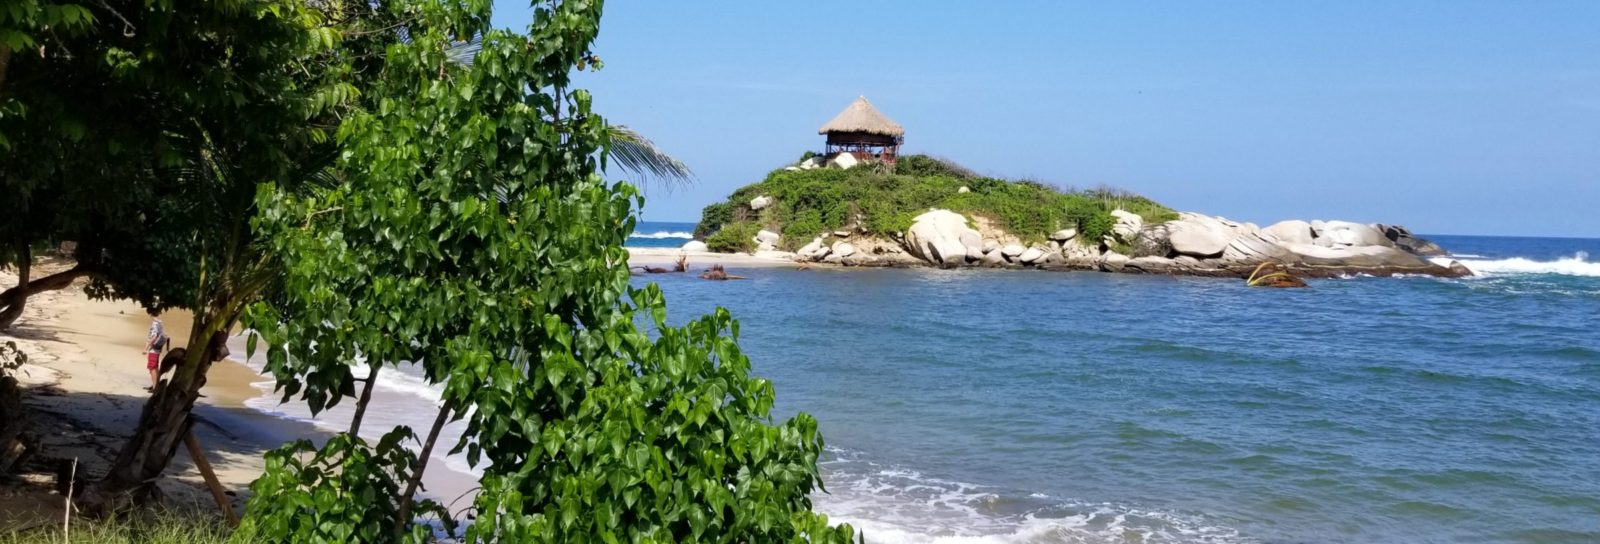 Cabo San Juan at Tayrona National Park